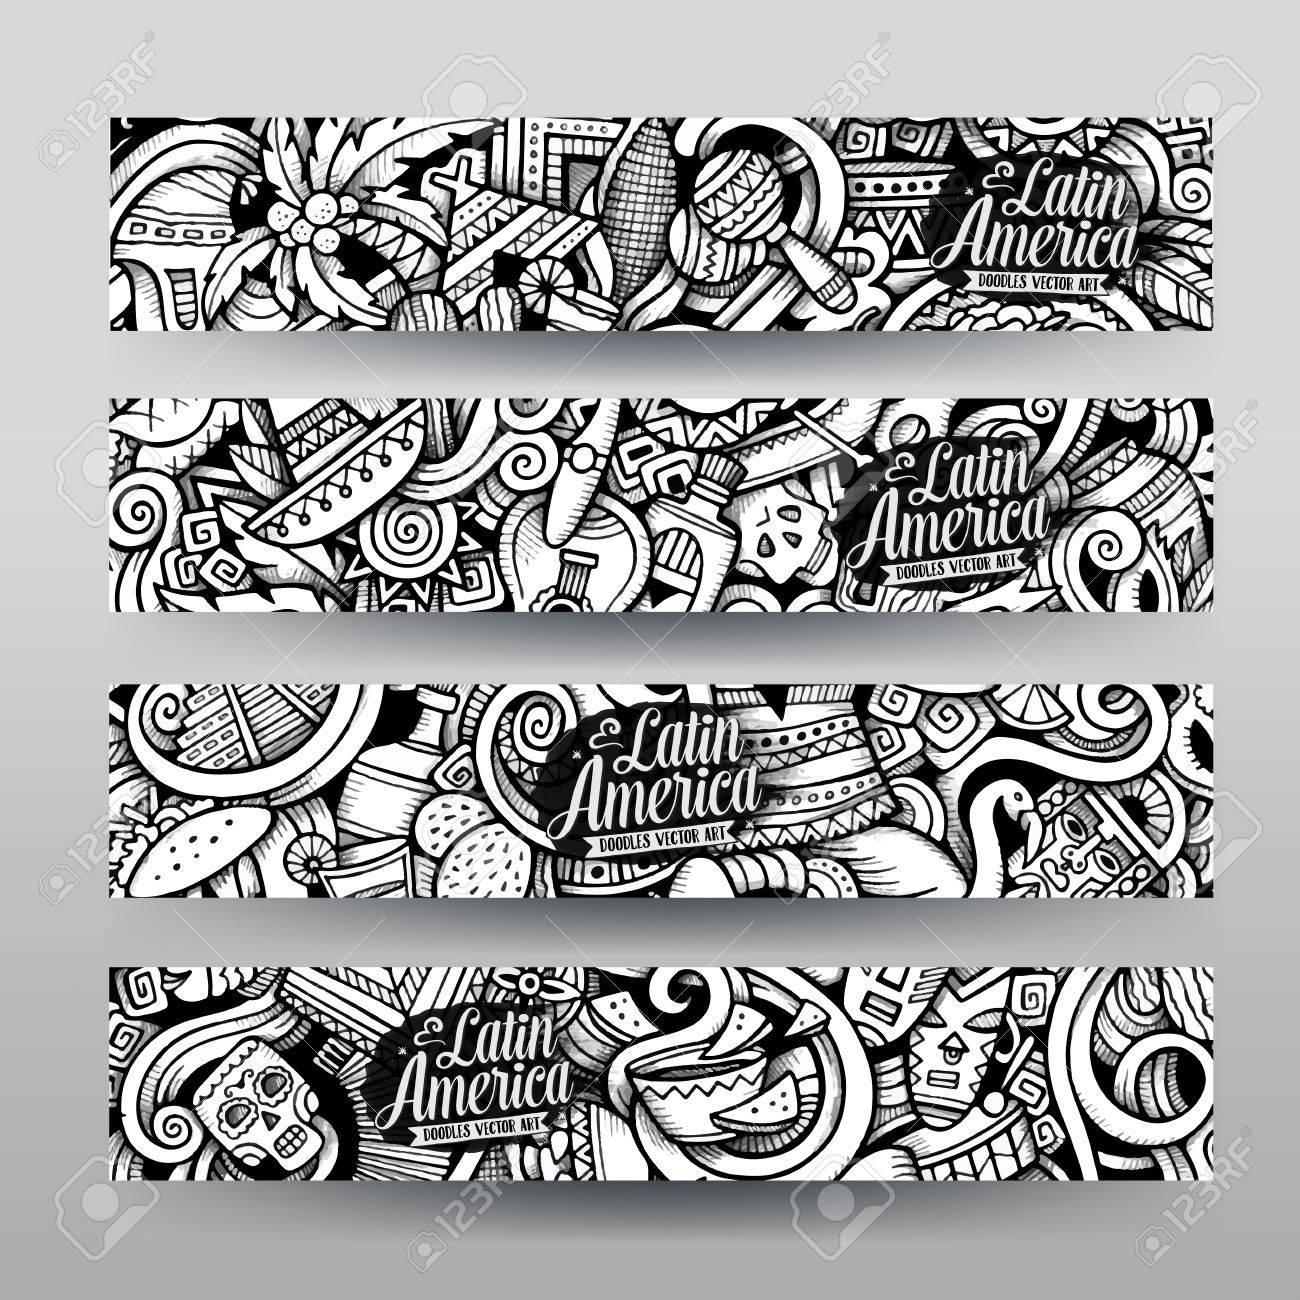 Graphics vector hand drawn sketchy trace latin american doodle graphics vector hand drawn sketchy trace latin american doodle horizontal banners design templates set pronofoot35fo Choice Image